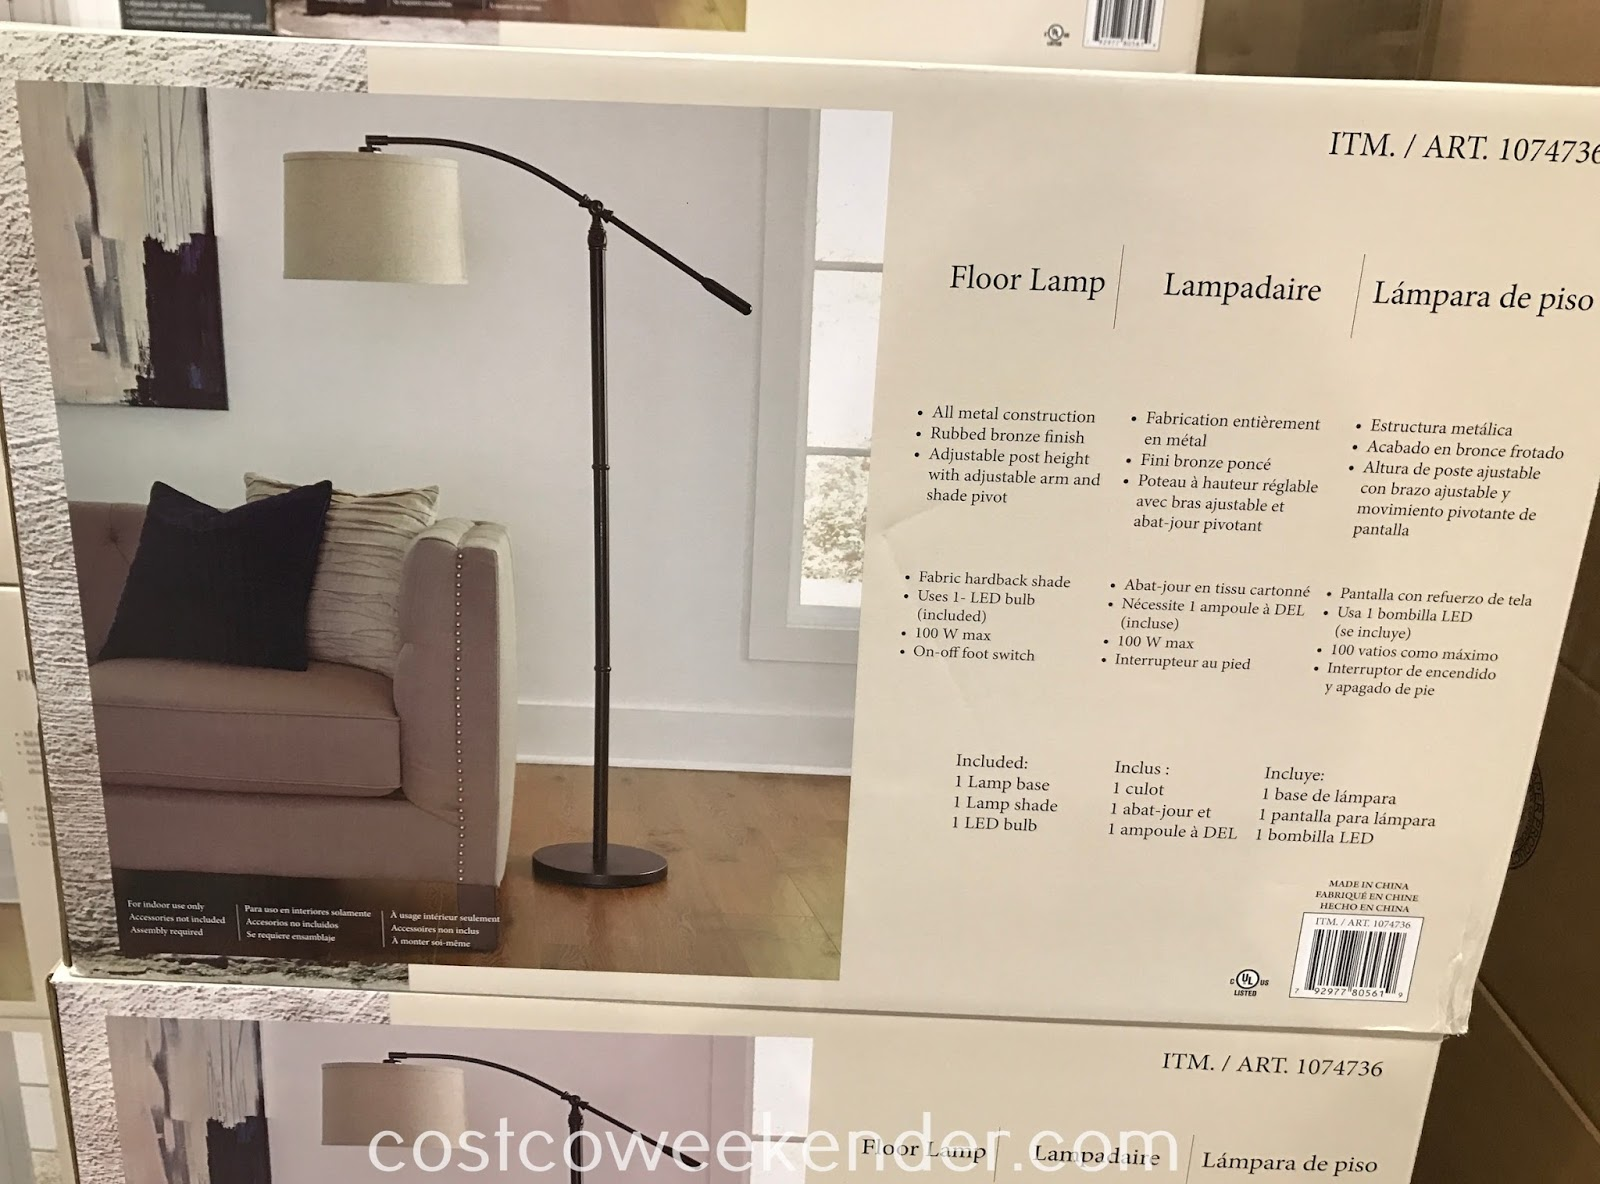 Add some light and decor to your home with the Uttermost Arc Floor Lamp